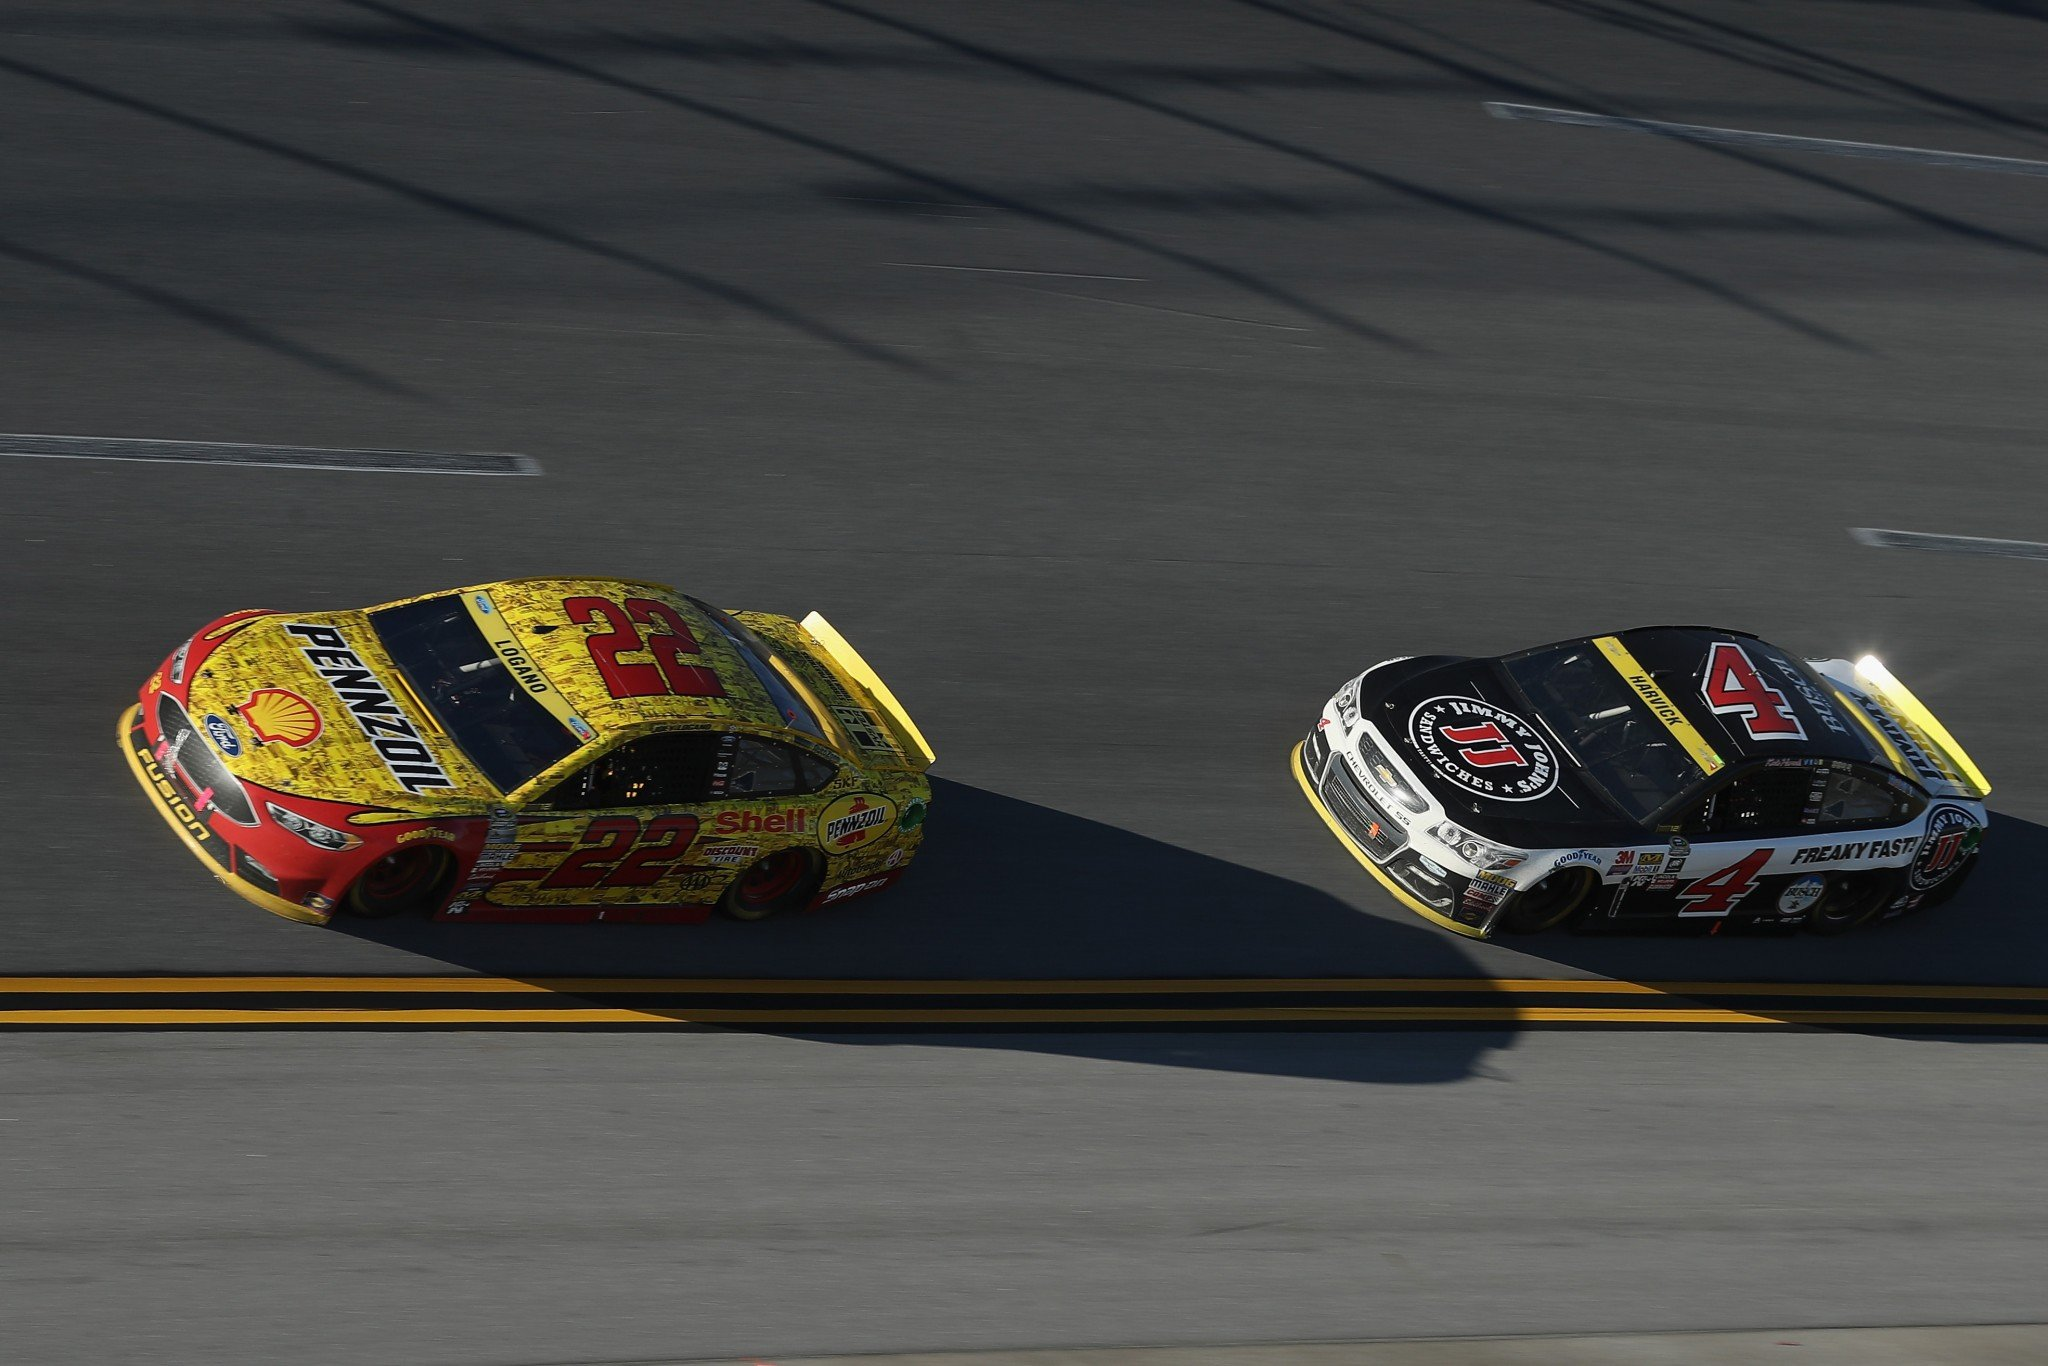 Kevin Harvick trails Joey Logano in this picture, but he leads him in Power Rankings. (Getty)